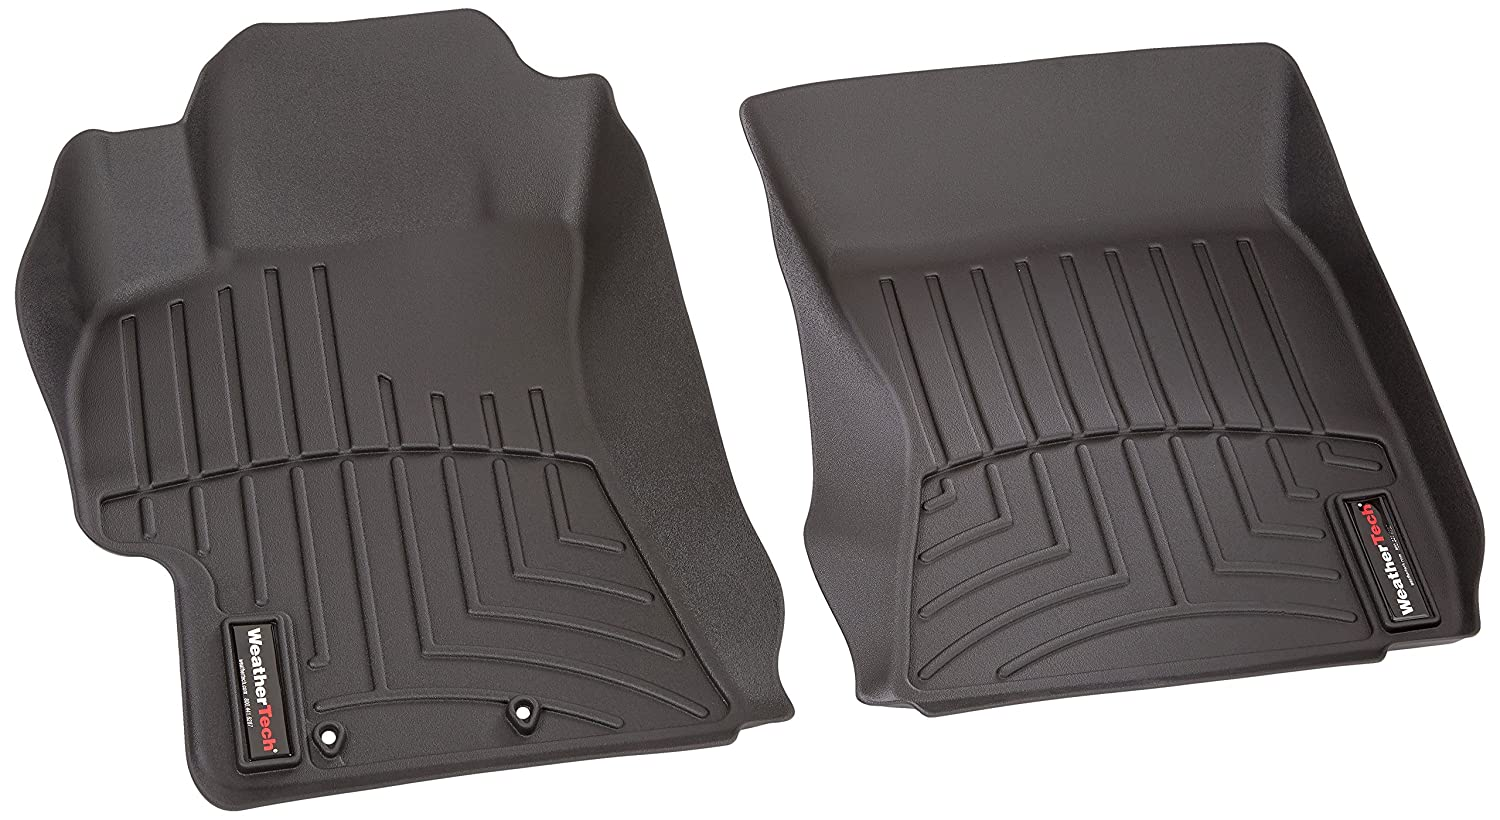 Weathertech floor mats alternative - Amazon Com Weathertech Custom Fit Front Floorliner For Subaru Impreza Black Automotive